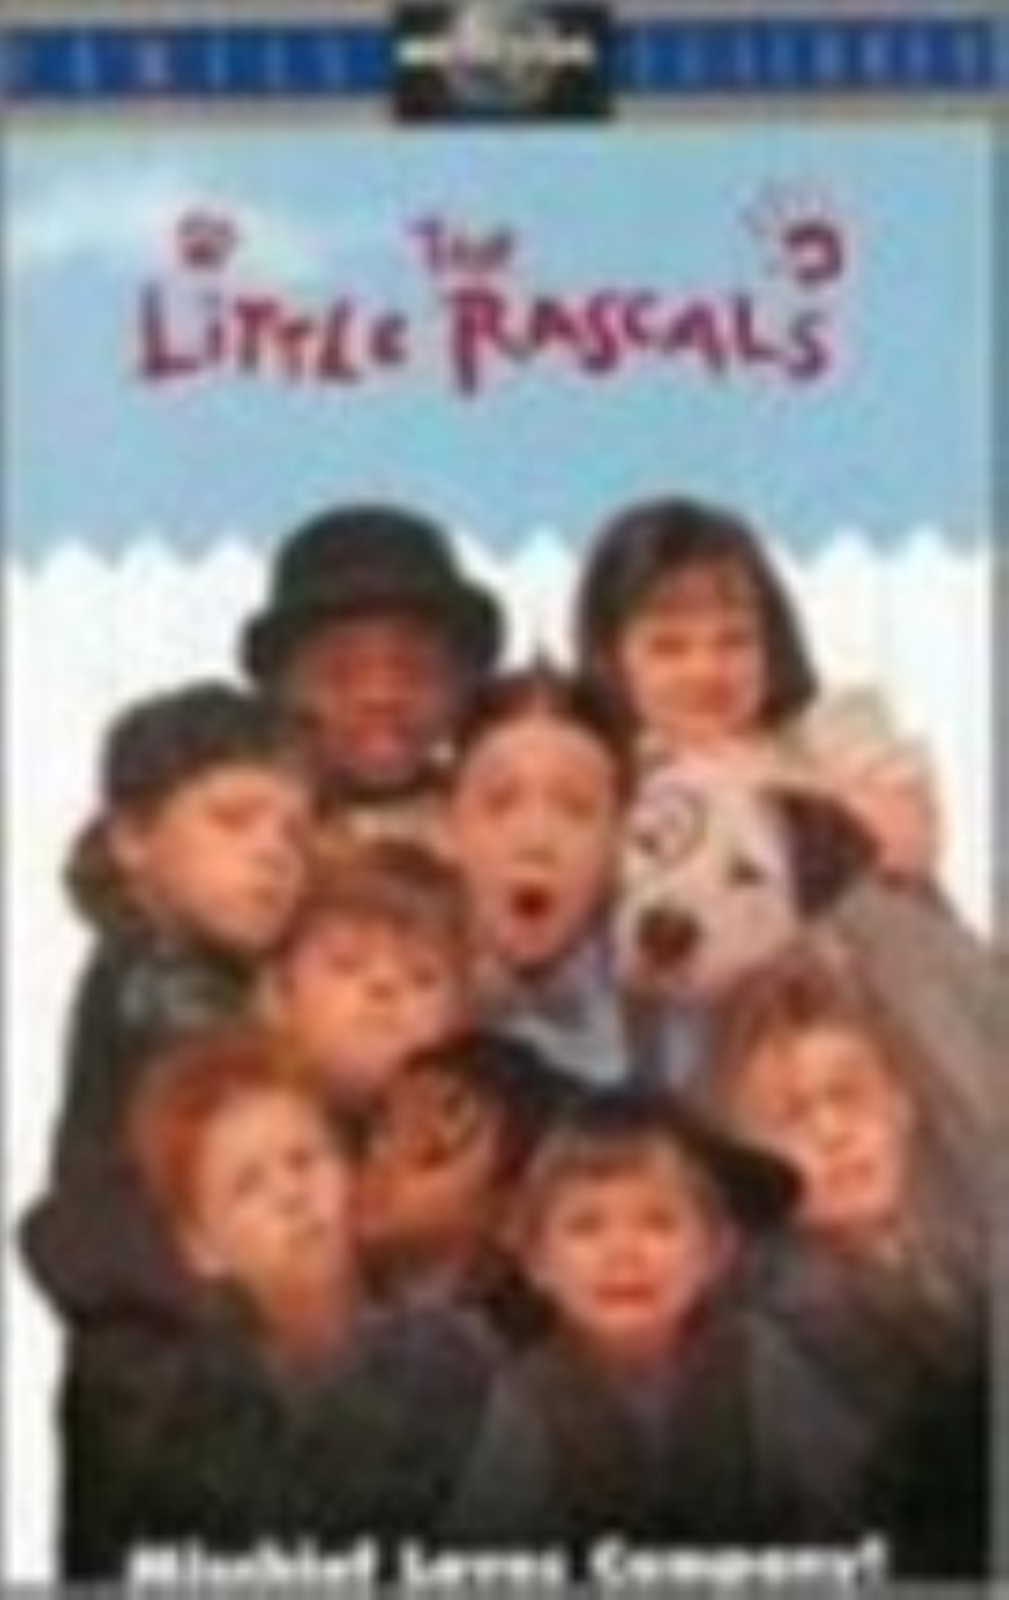 The Little Rascals: Mischief Loves Company Vhs